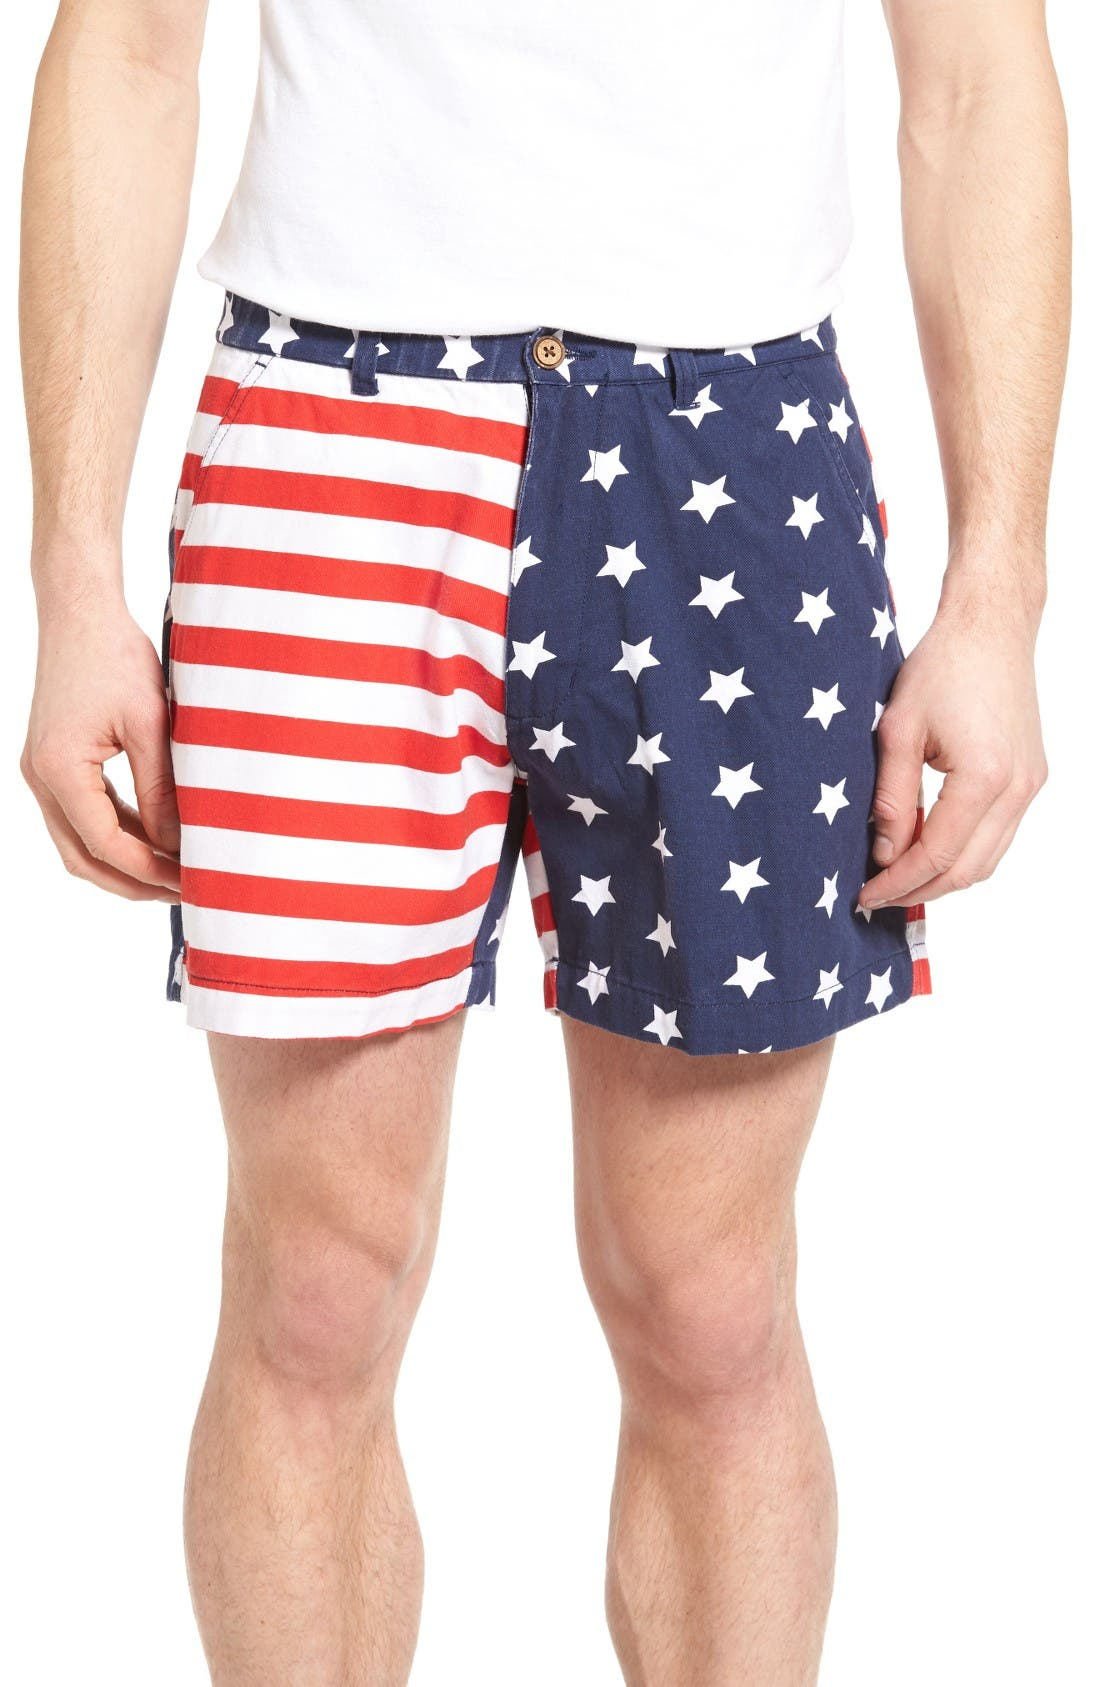 Alternate Image 1 Selected - Vintage 1946 Snappers Americana Shorts